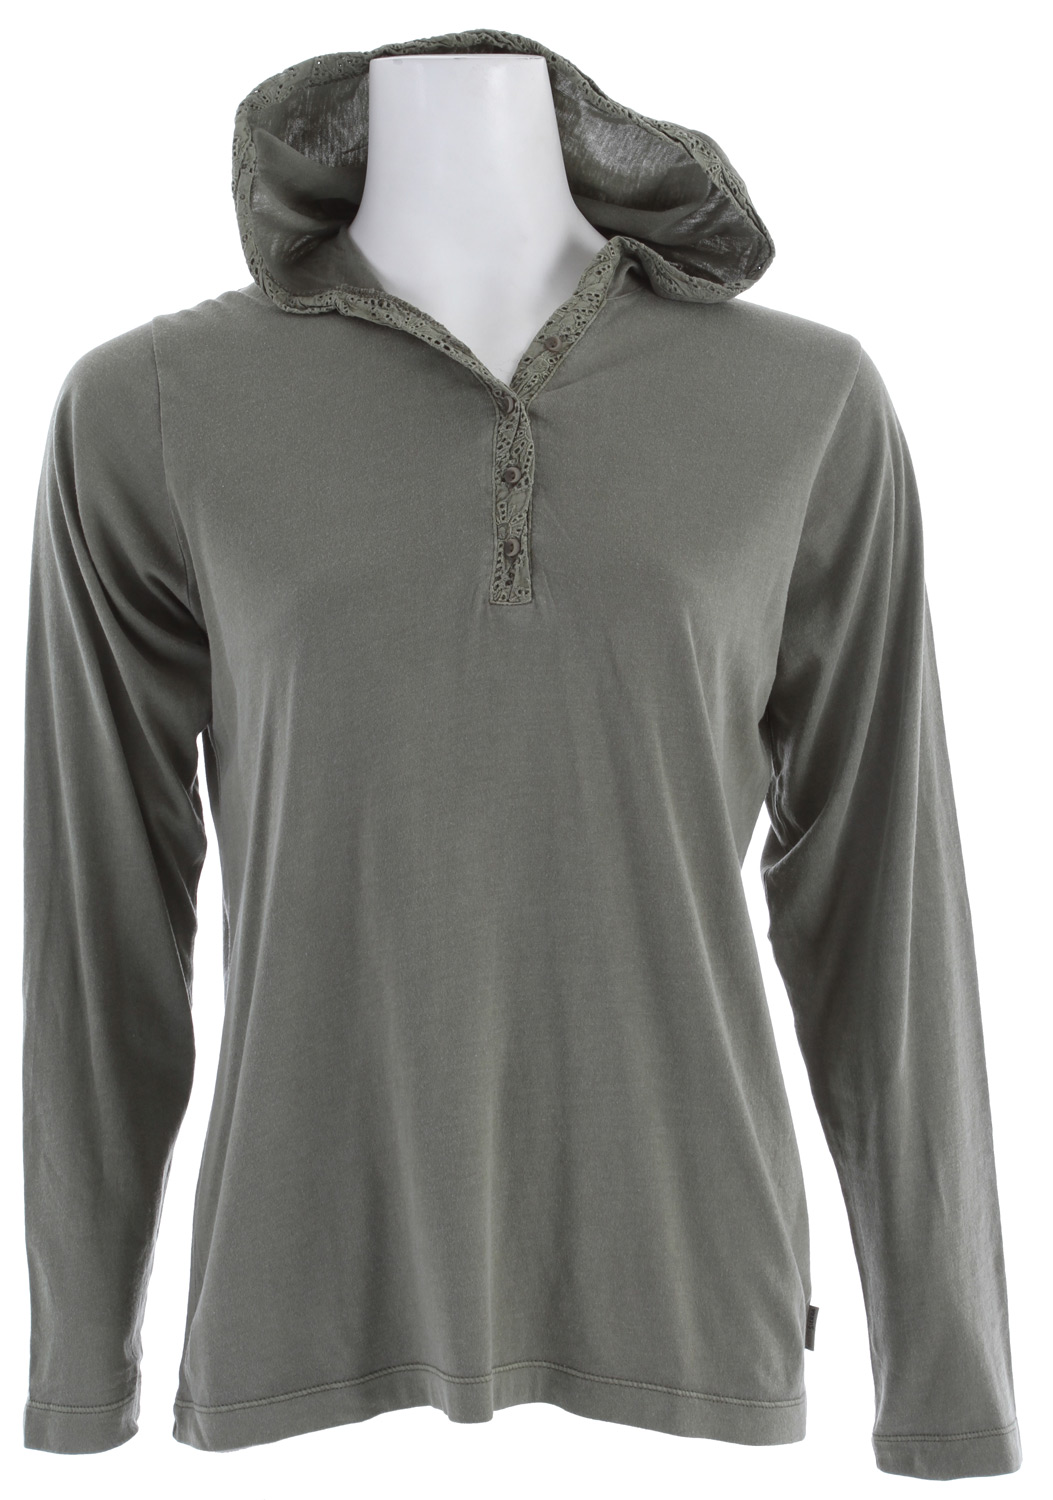 "Entertainment This sporty pullover is exactly what you need. It works well worn alone, or as a light layer over tanks and tees, for those early morning dog walks. Stylish touches include the hood, a V-neckline, and front hand warmer pockets.Key Features of the White Sierra Sugarloaf Hoodie: 55% Cotton / 45% Modal Jersey knit with 100% Cotton crochet trim Pigment garment dye Garment silicone and enzyme washed for buttery soft hand Faded washed down look 25"" back length - $27.95"